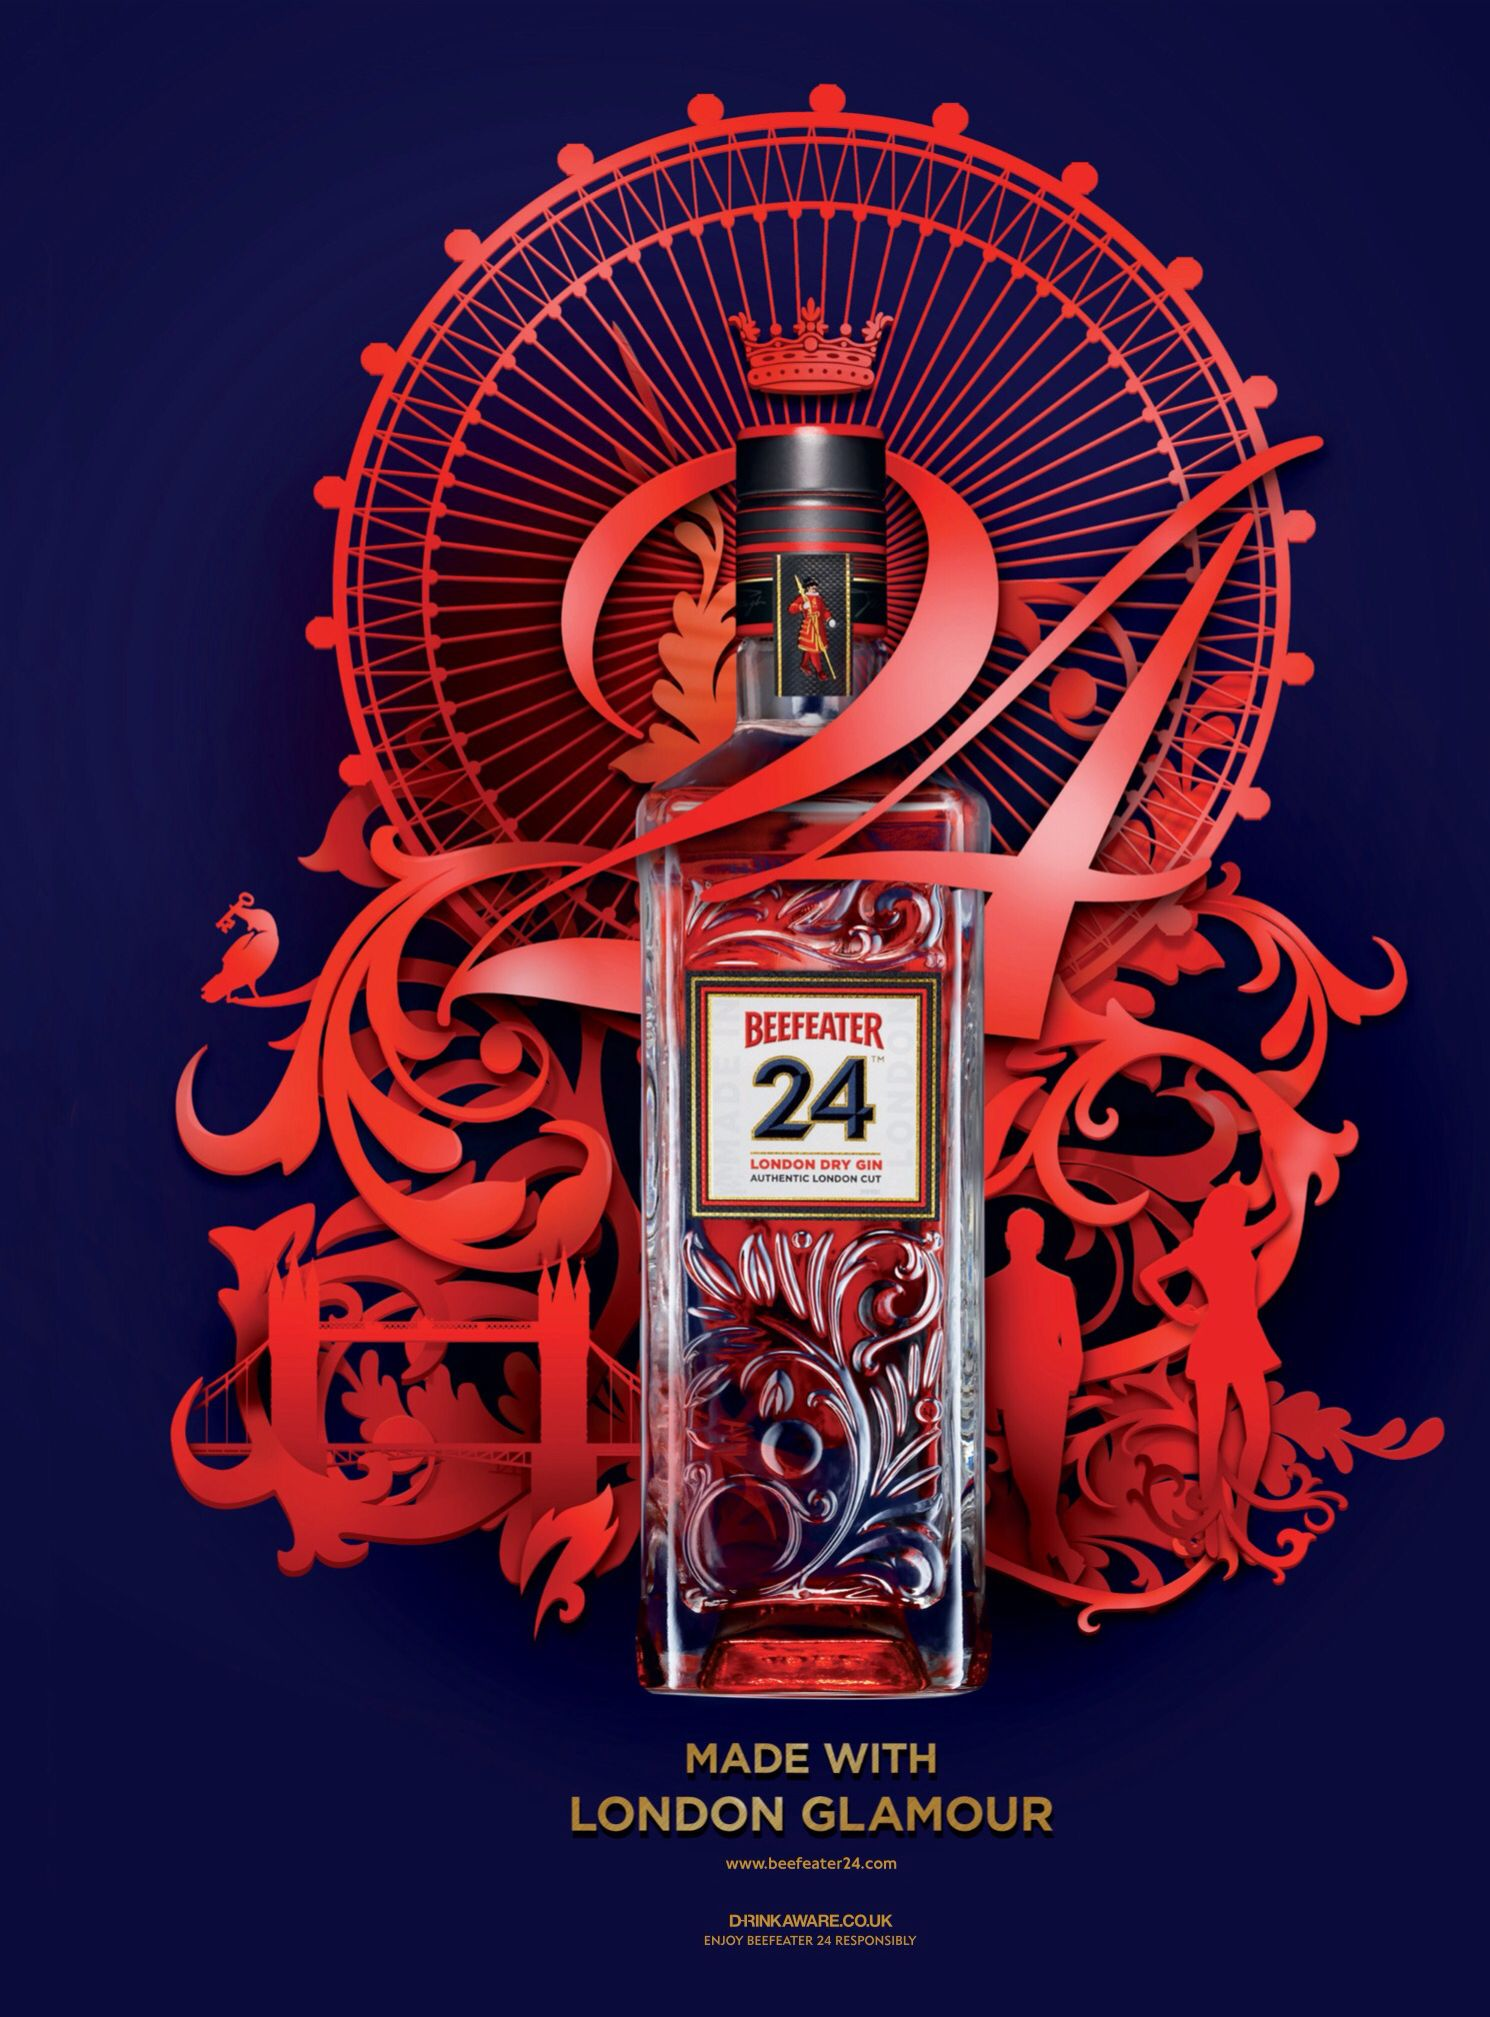 Beefeater Gin London Glamour Advertising Campaign Advertising Design Visual Design Creative Advertising